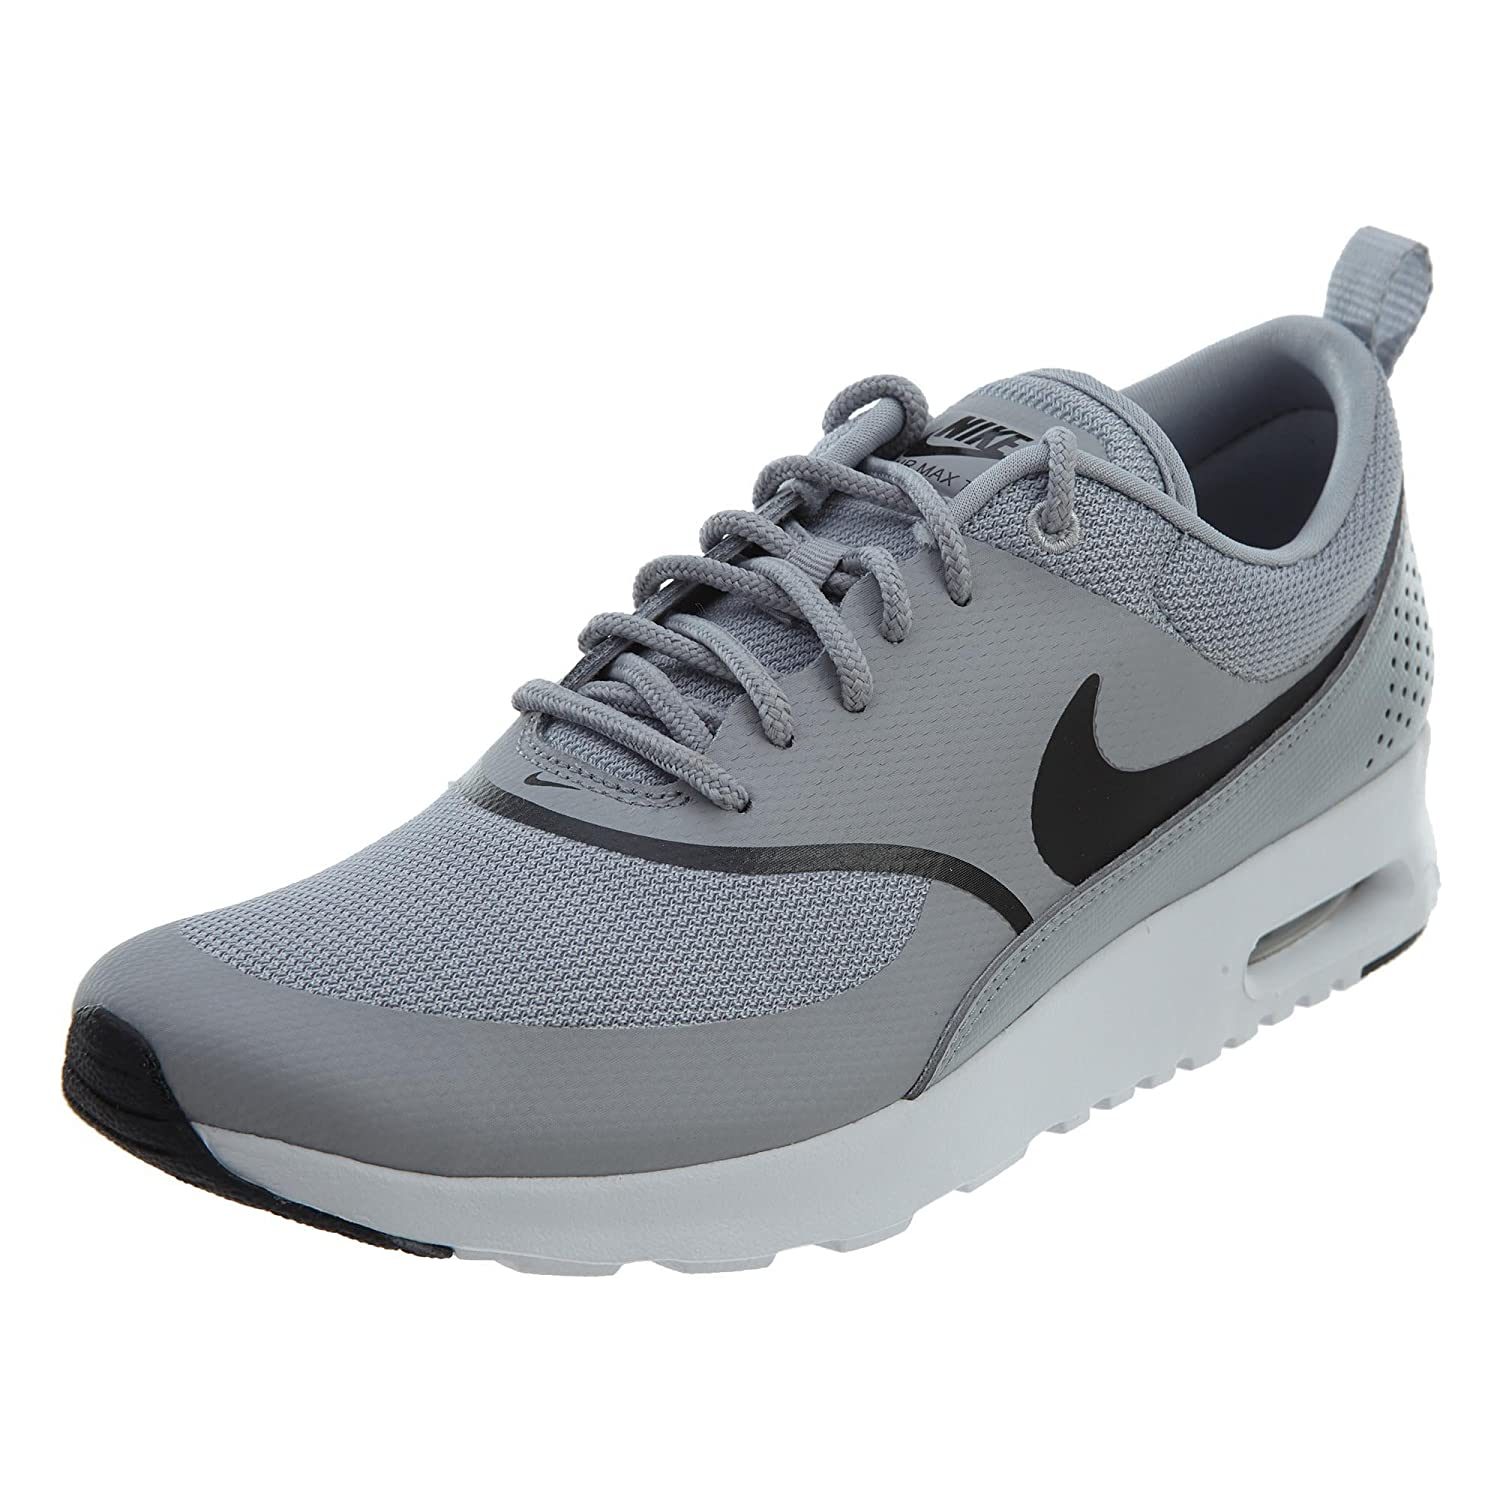 detailed look 3d71b 9f81d Nike Air Max Thea Print Women's Trainer: Amazon.co.uk: Shoes & Bags